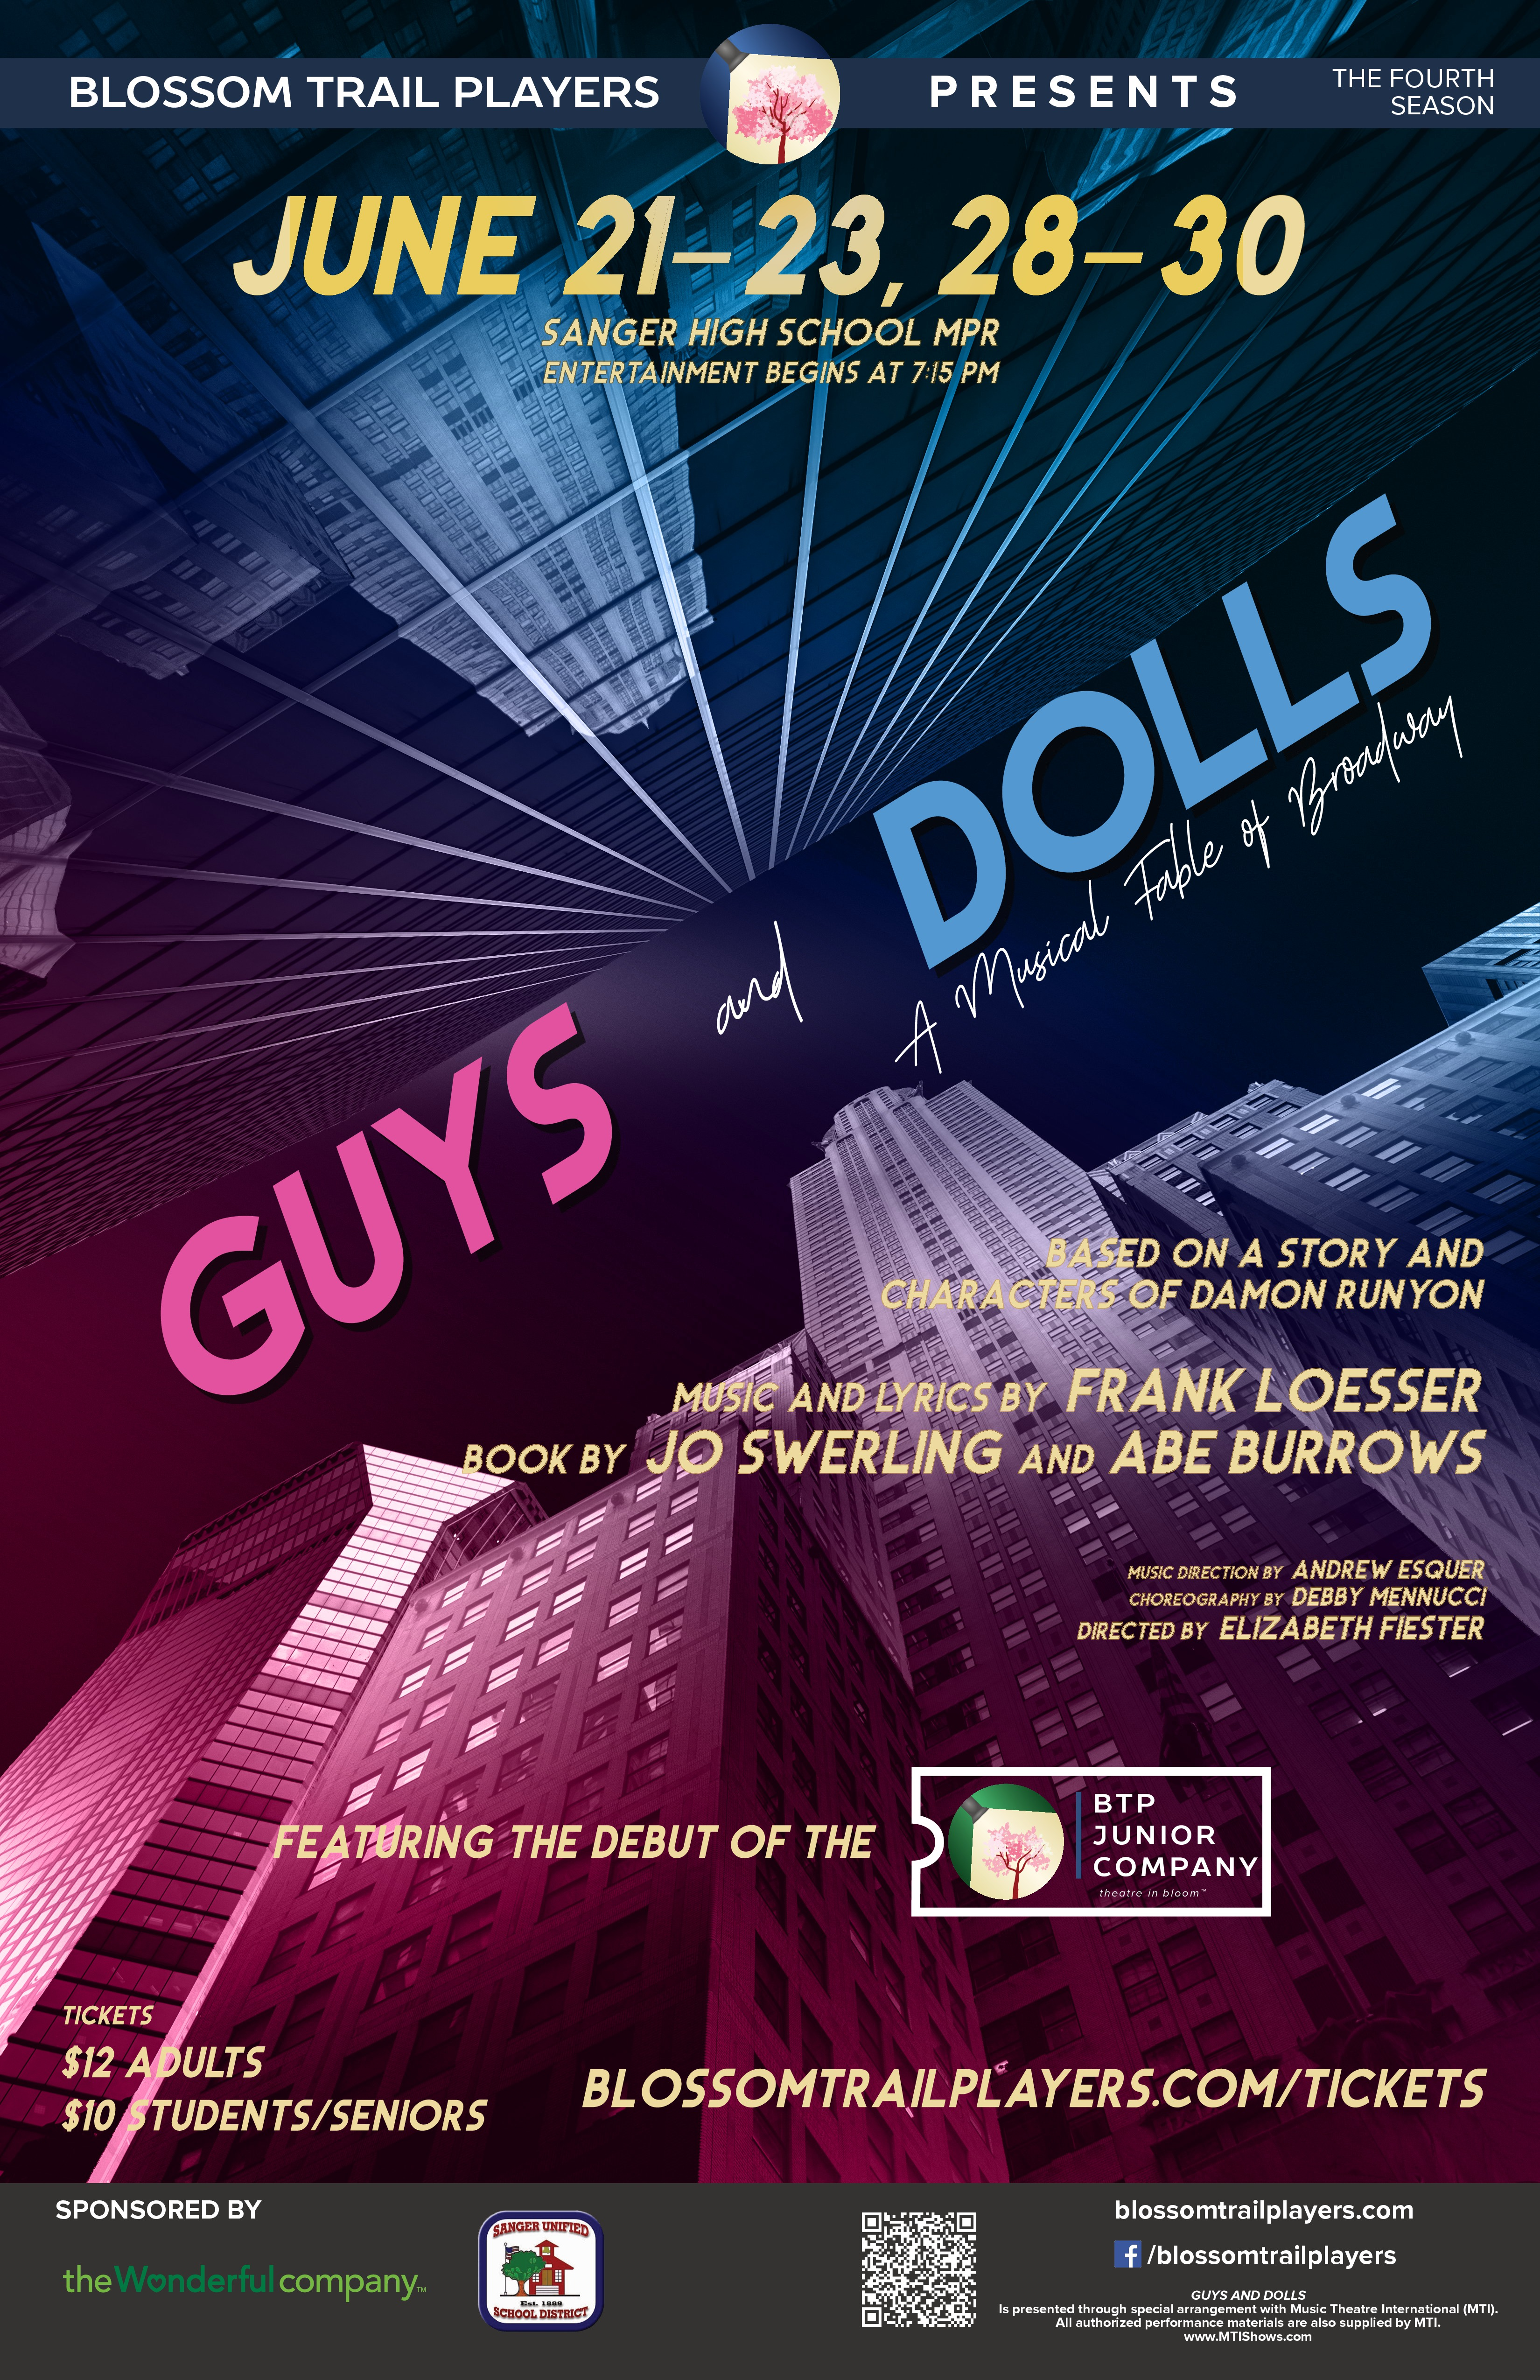 PO-Guys_and_Dolls-Main-page-0